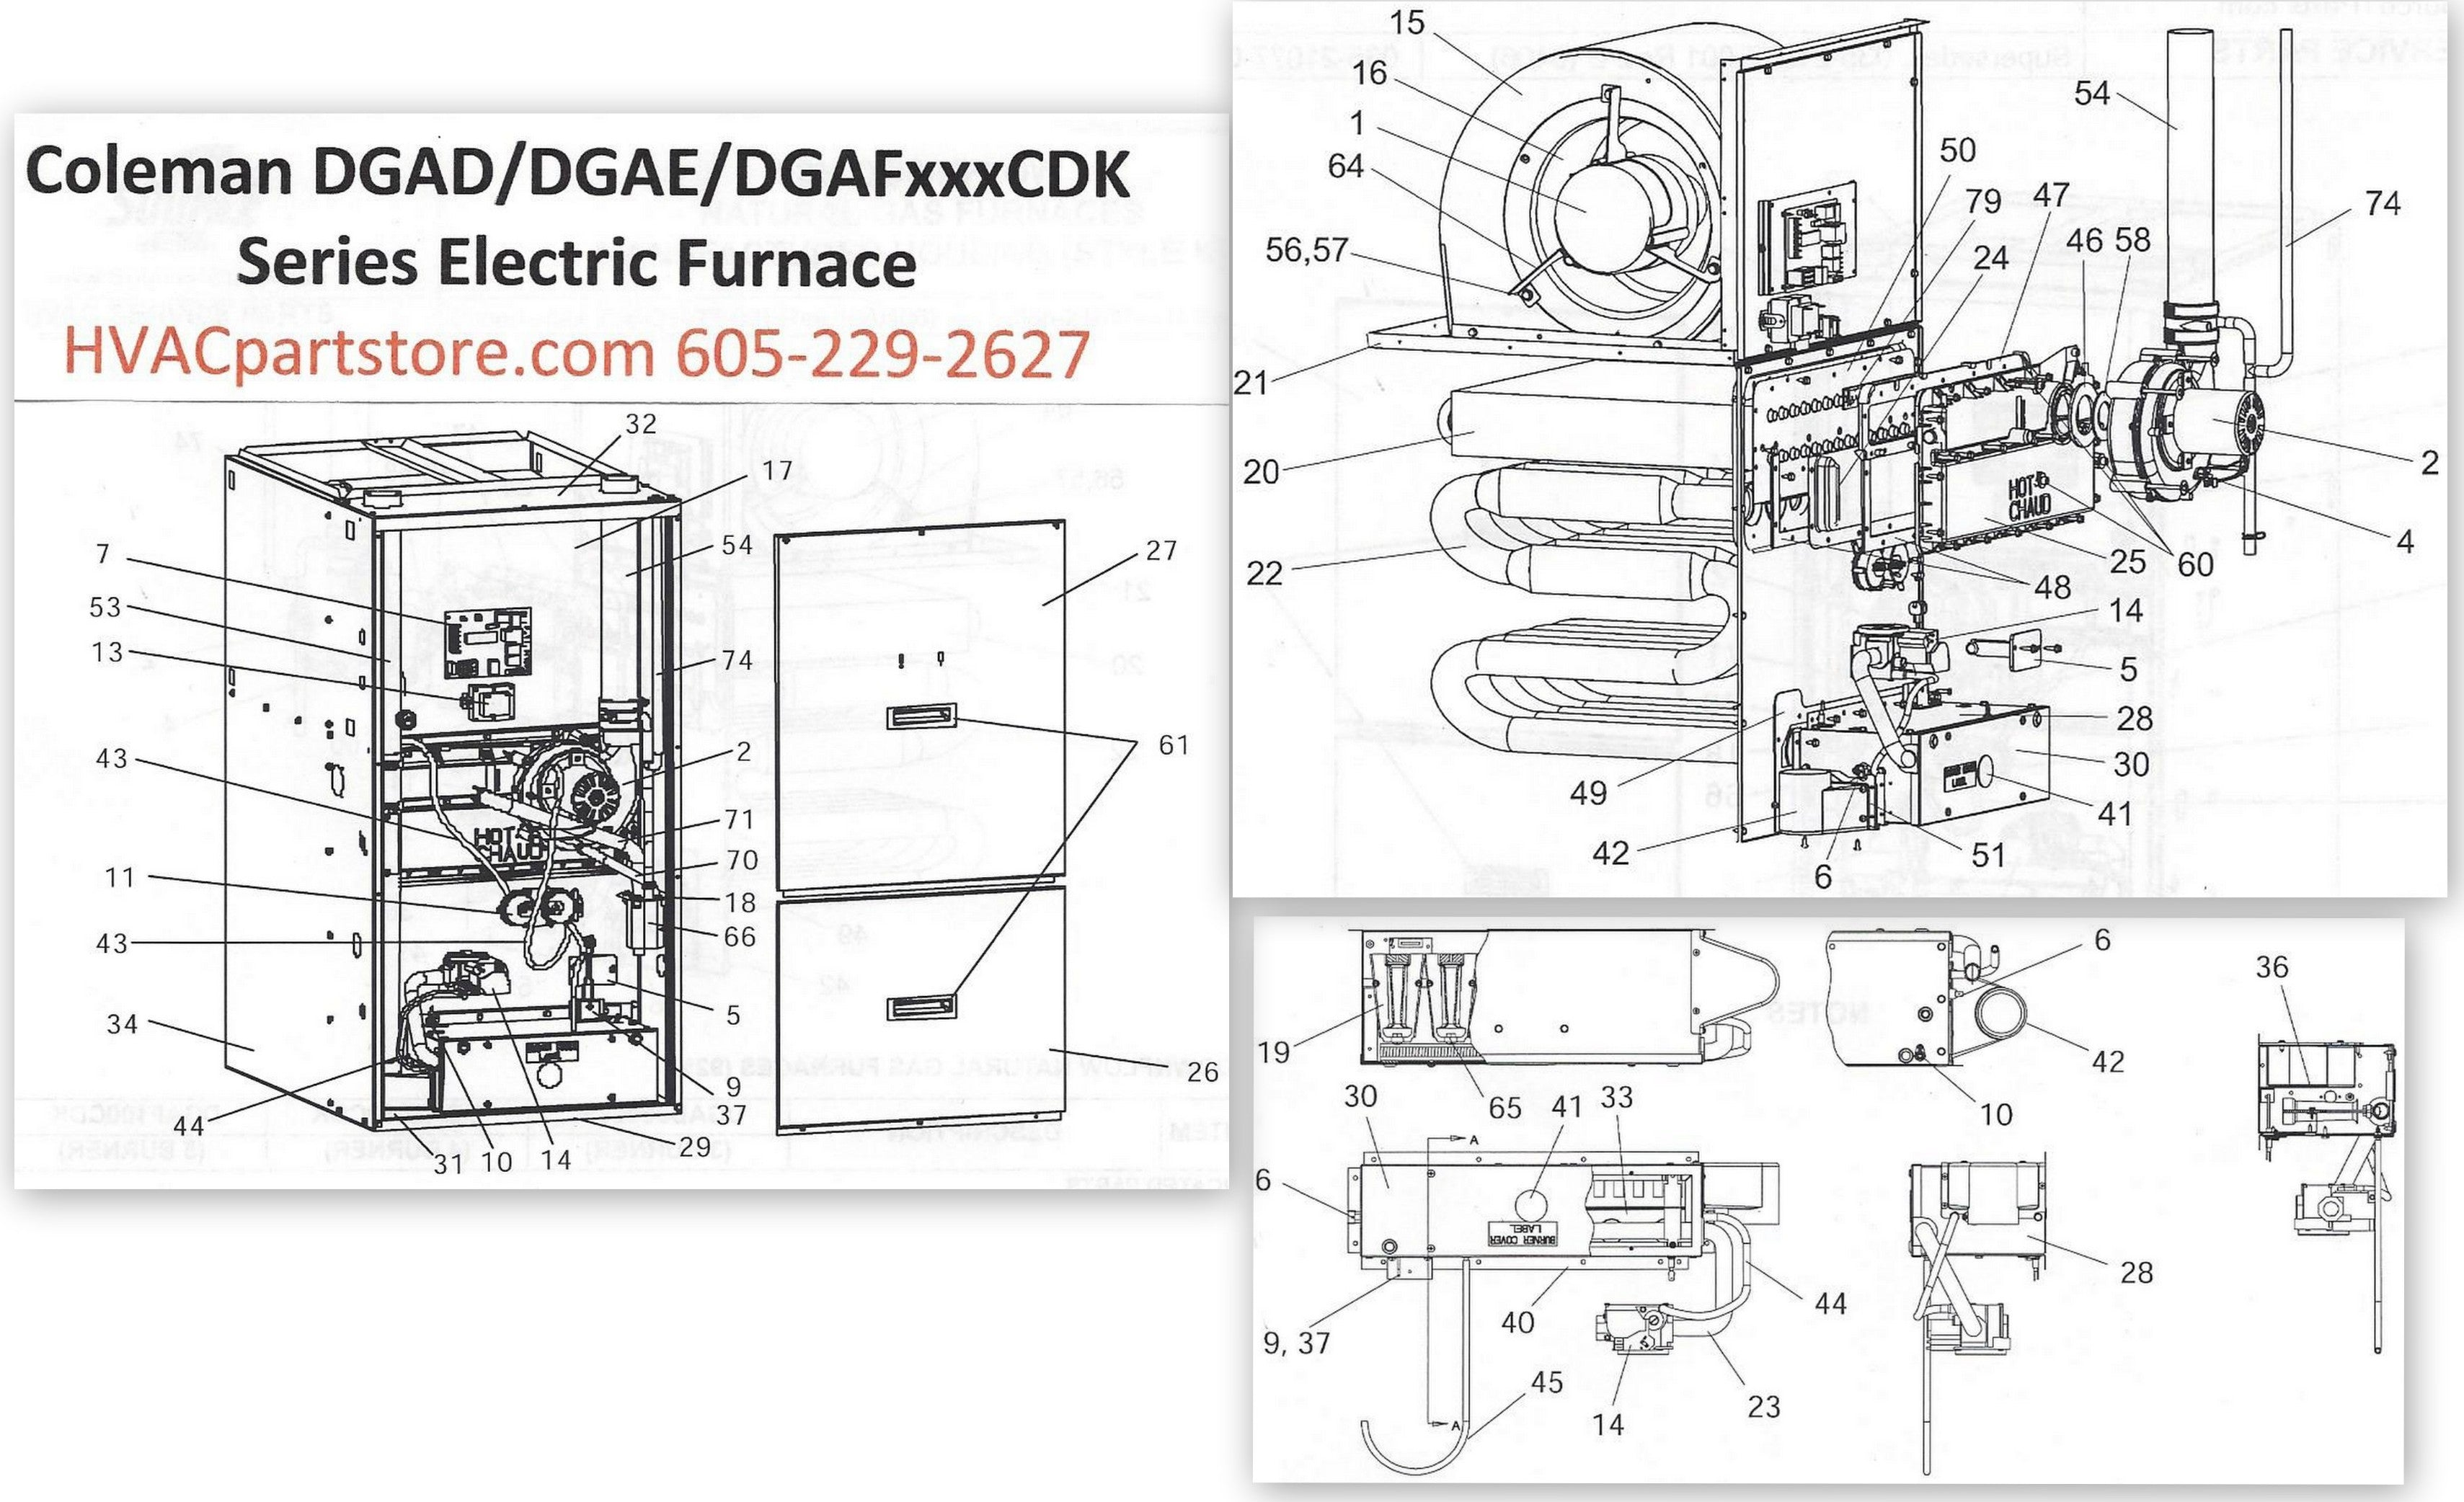 coleman evcon wiring diagram with Dgae080cdk Coleman Gas Furnace Parts on Coleman Evcon Wiring Diagram 2000 also Dgae080cdk Coleman Gas Furnace Parts together with 337983 together with 3 Wire Zone Valve Wiring Diagram Heat Only Thermostat With Honeywell further Wiring Diagram For Coleman Eb20b.